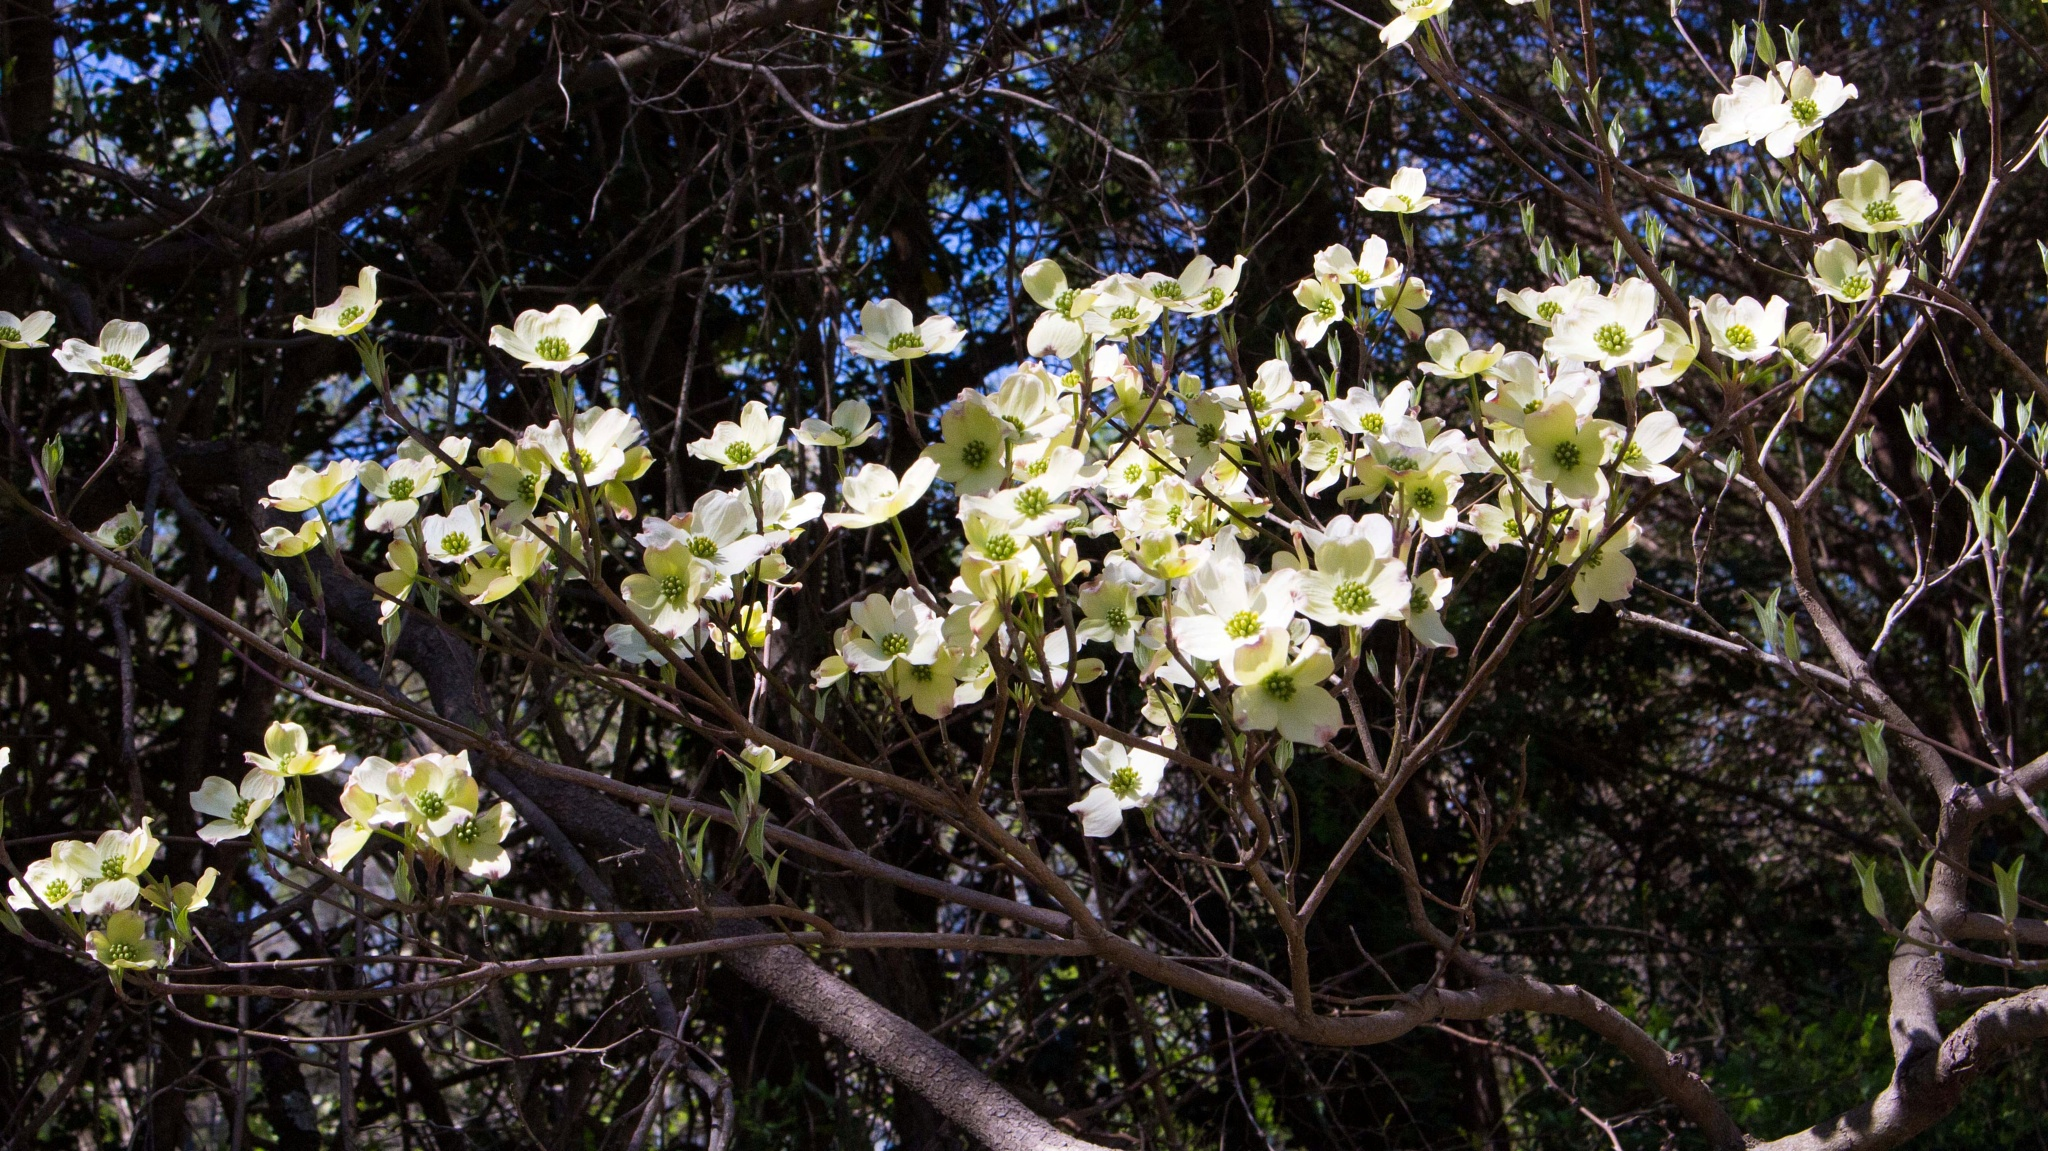 Dogwood blossoms by Mary Carter